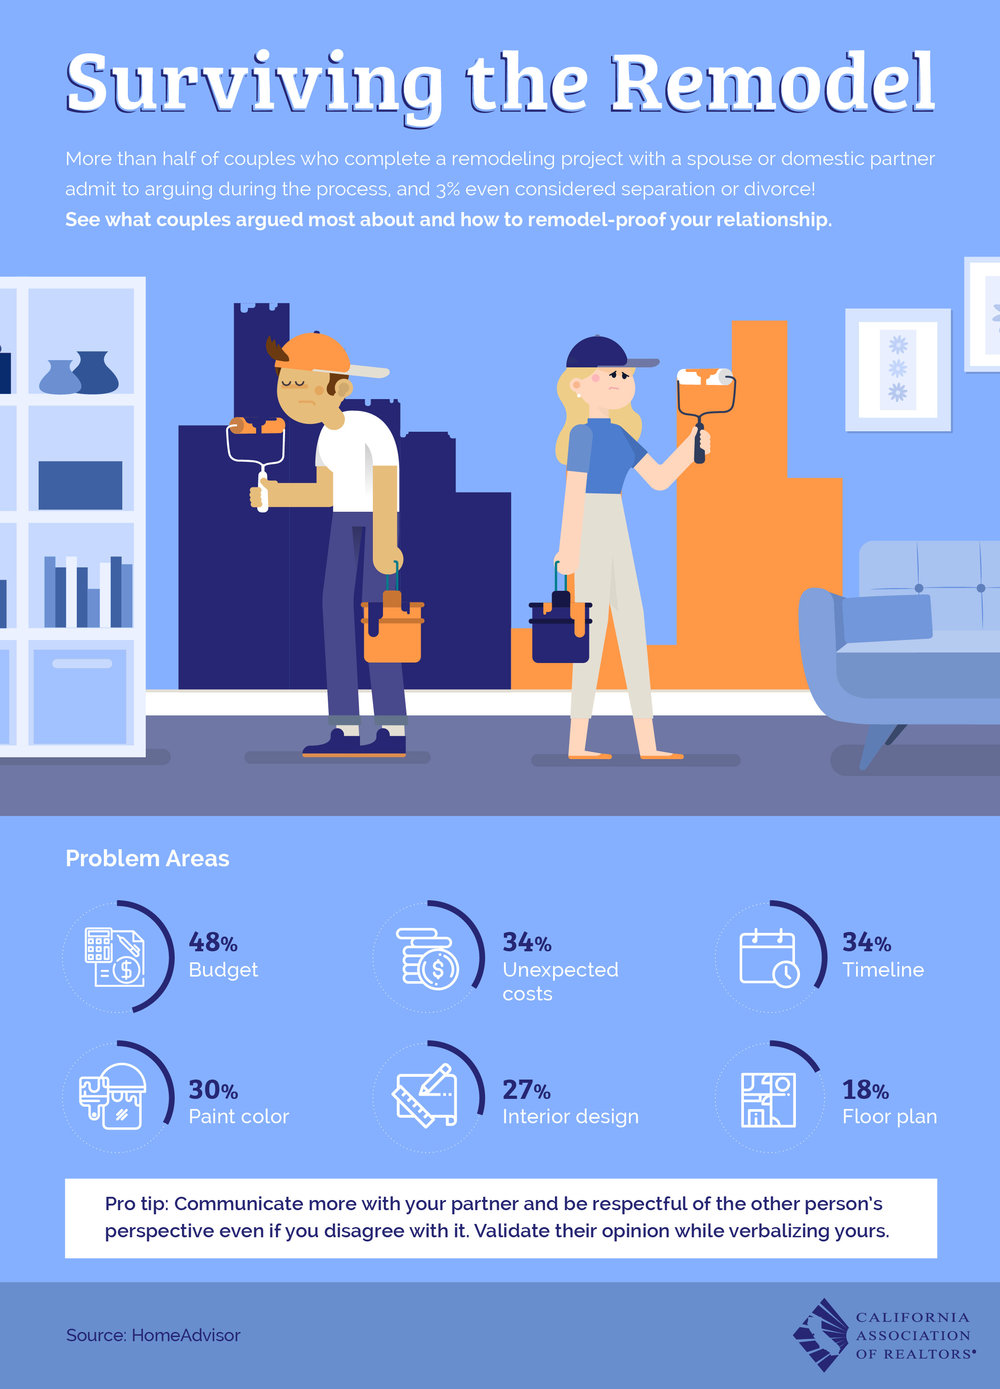 Surviving-the-Remodel-infographic.jpg